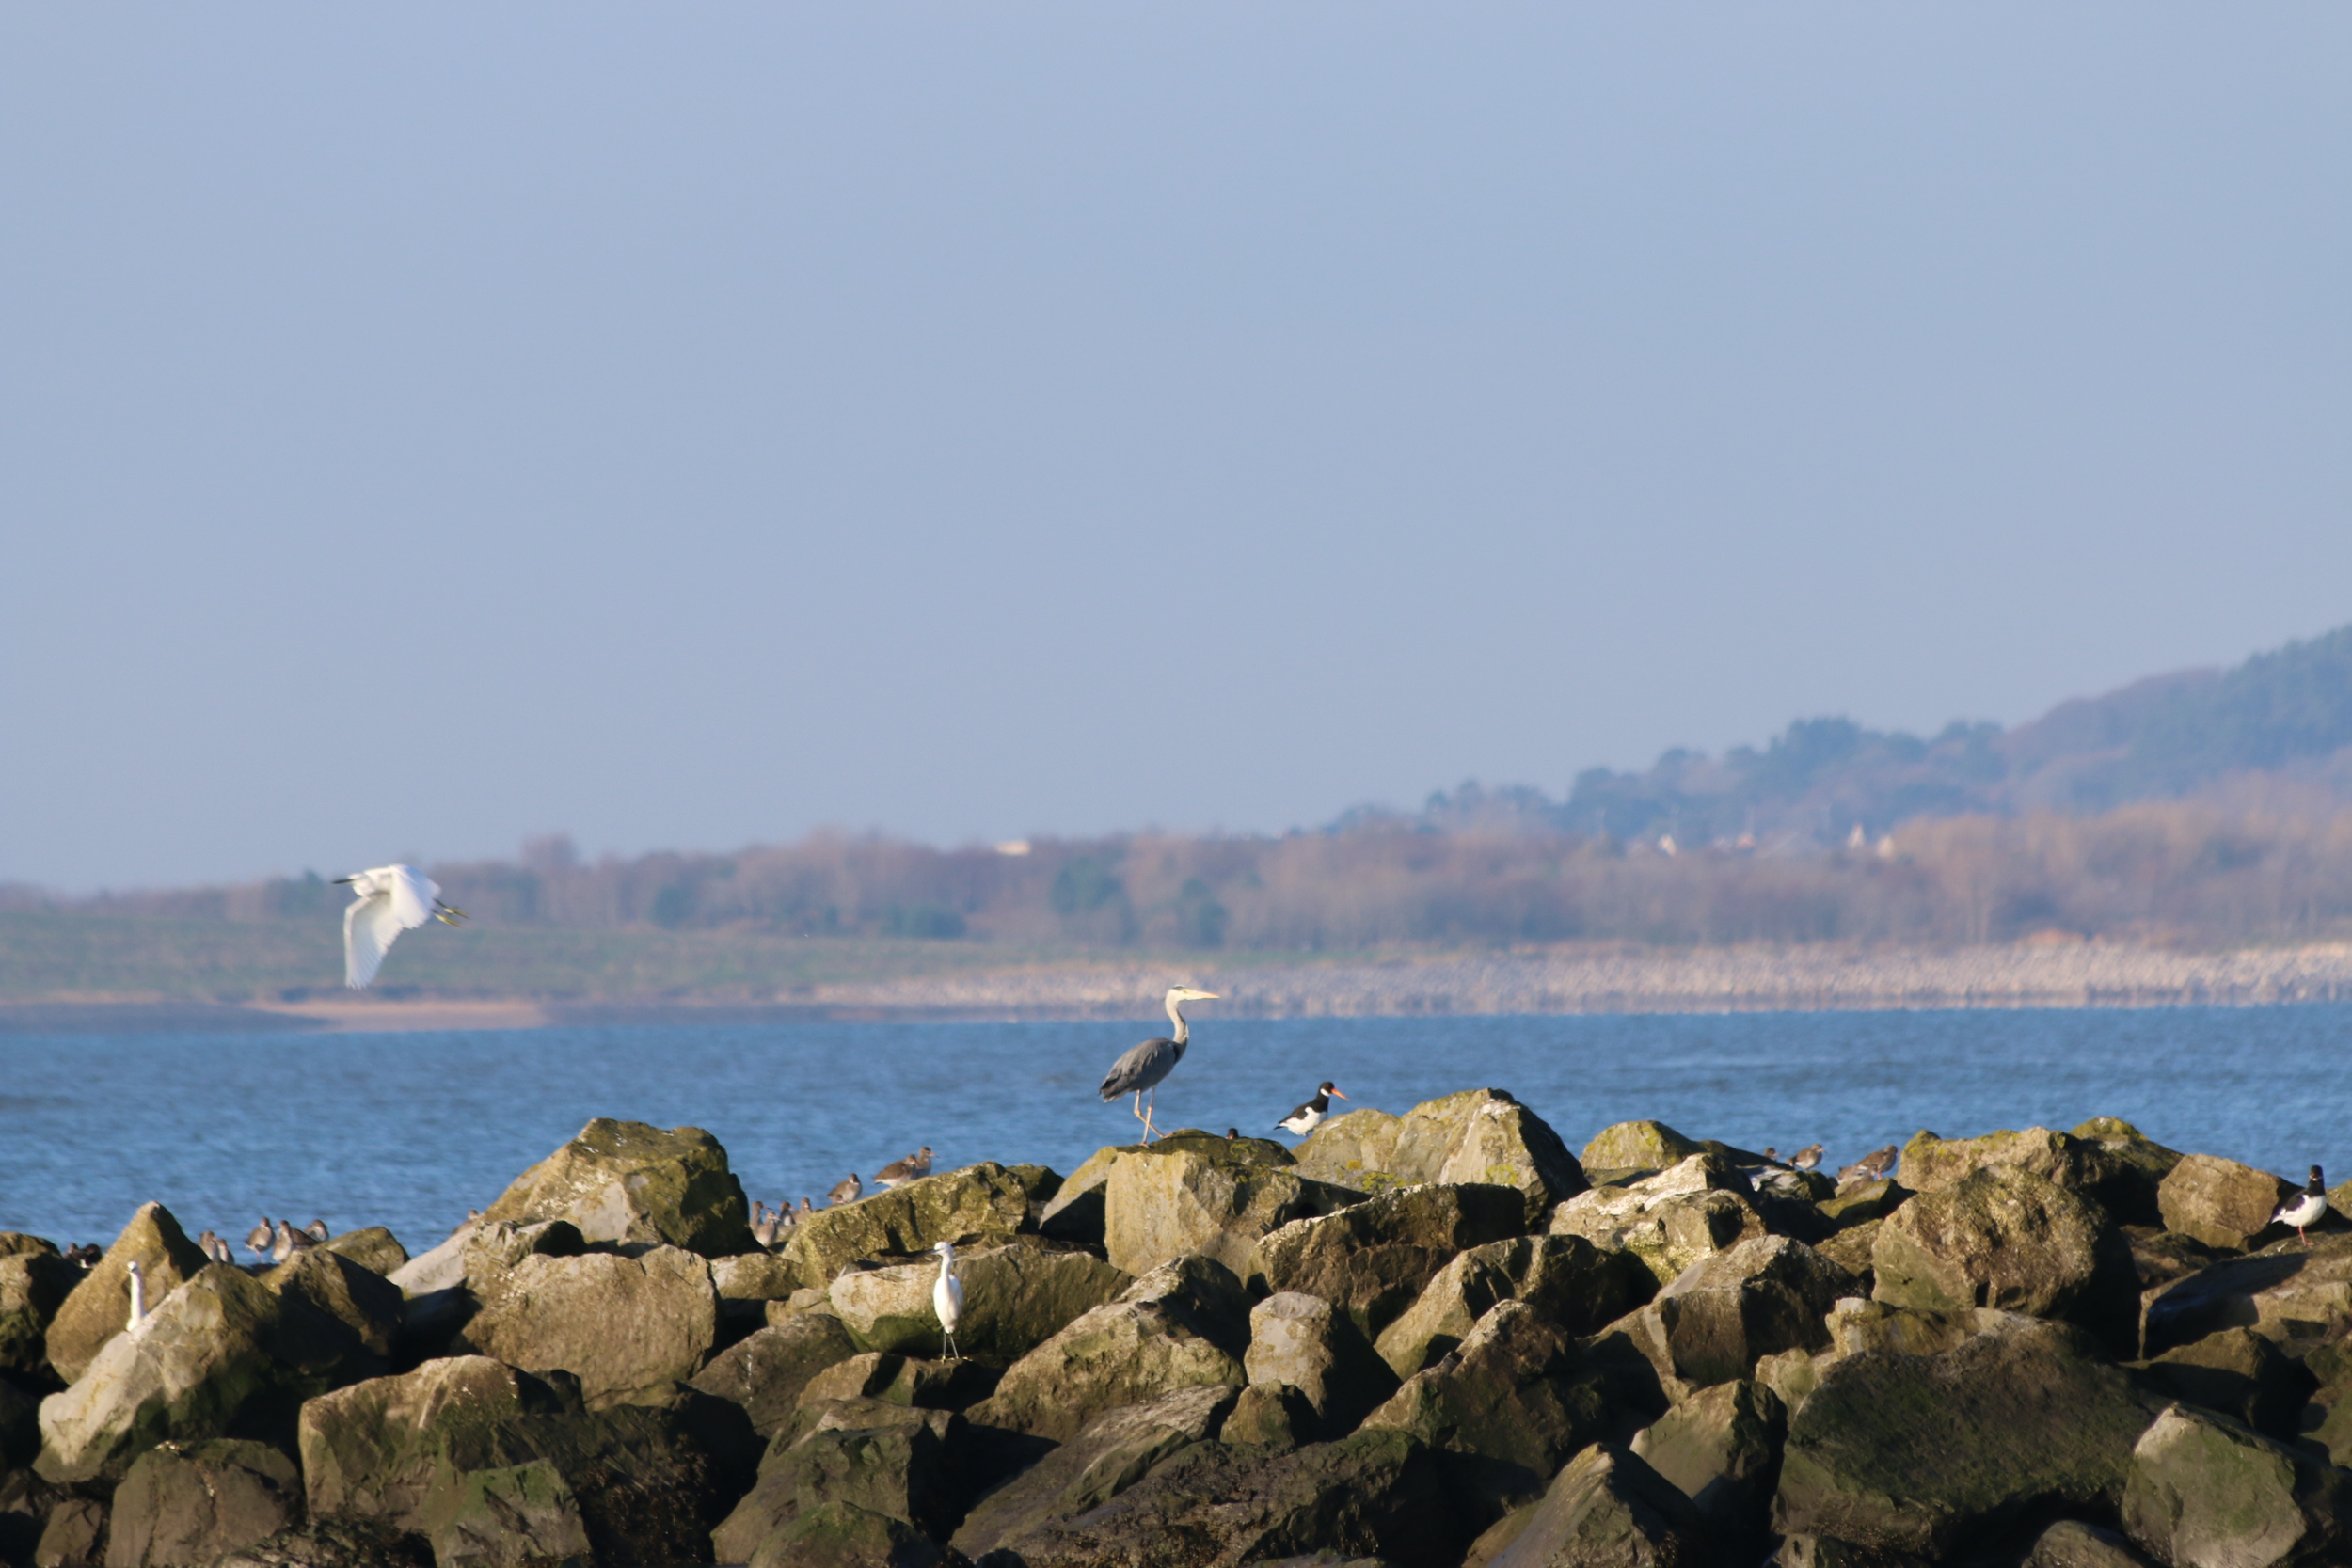 Snowy egrets, grey heron and oystercatchers. I need more zoom!